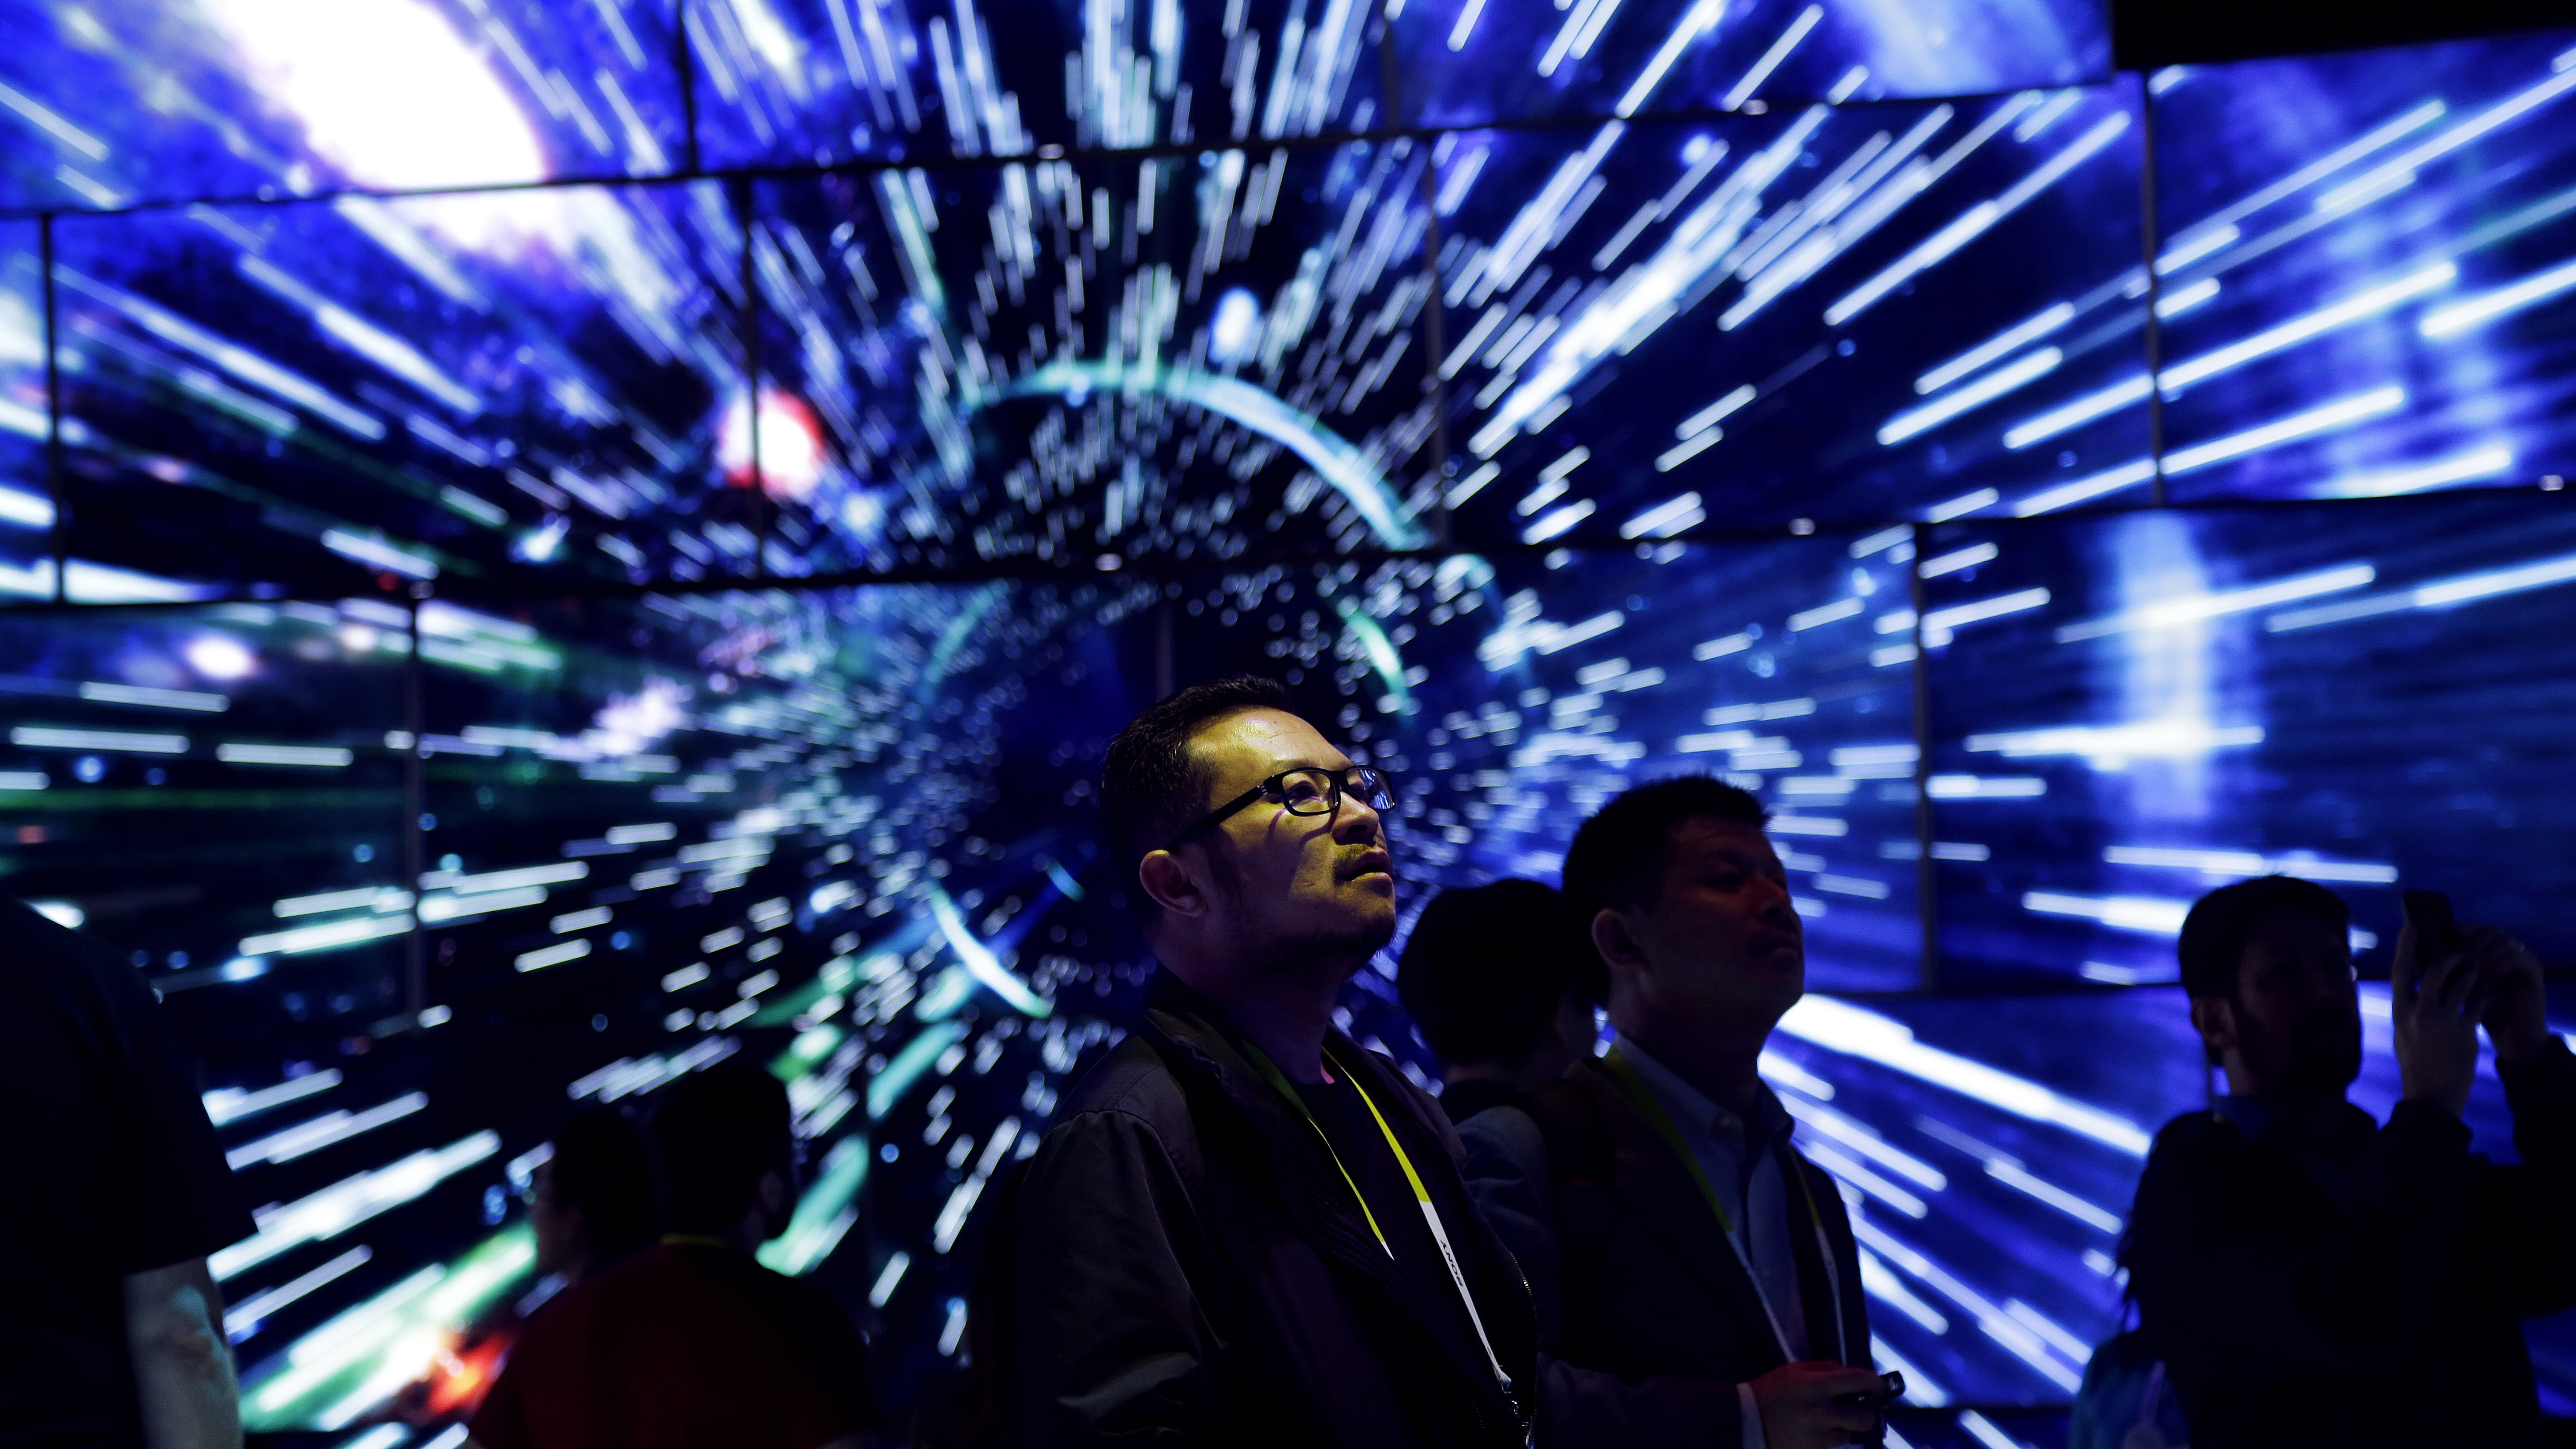 Bao Truong looks at a display of Samsung SUHD Quantum dot display TVs at the Samsung booth during CES International, Friday, Jan. 8, 2016, in Las Vegas. (AP Photo/Gregory Bull)